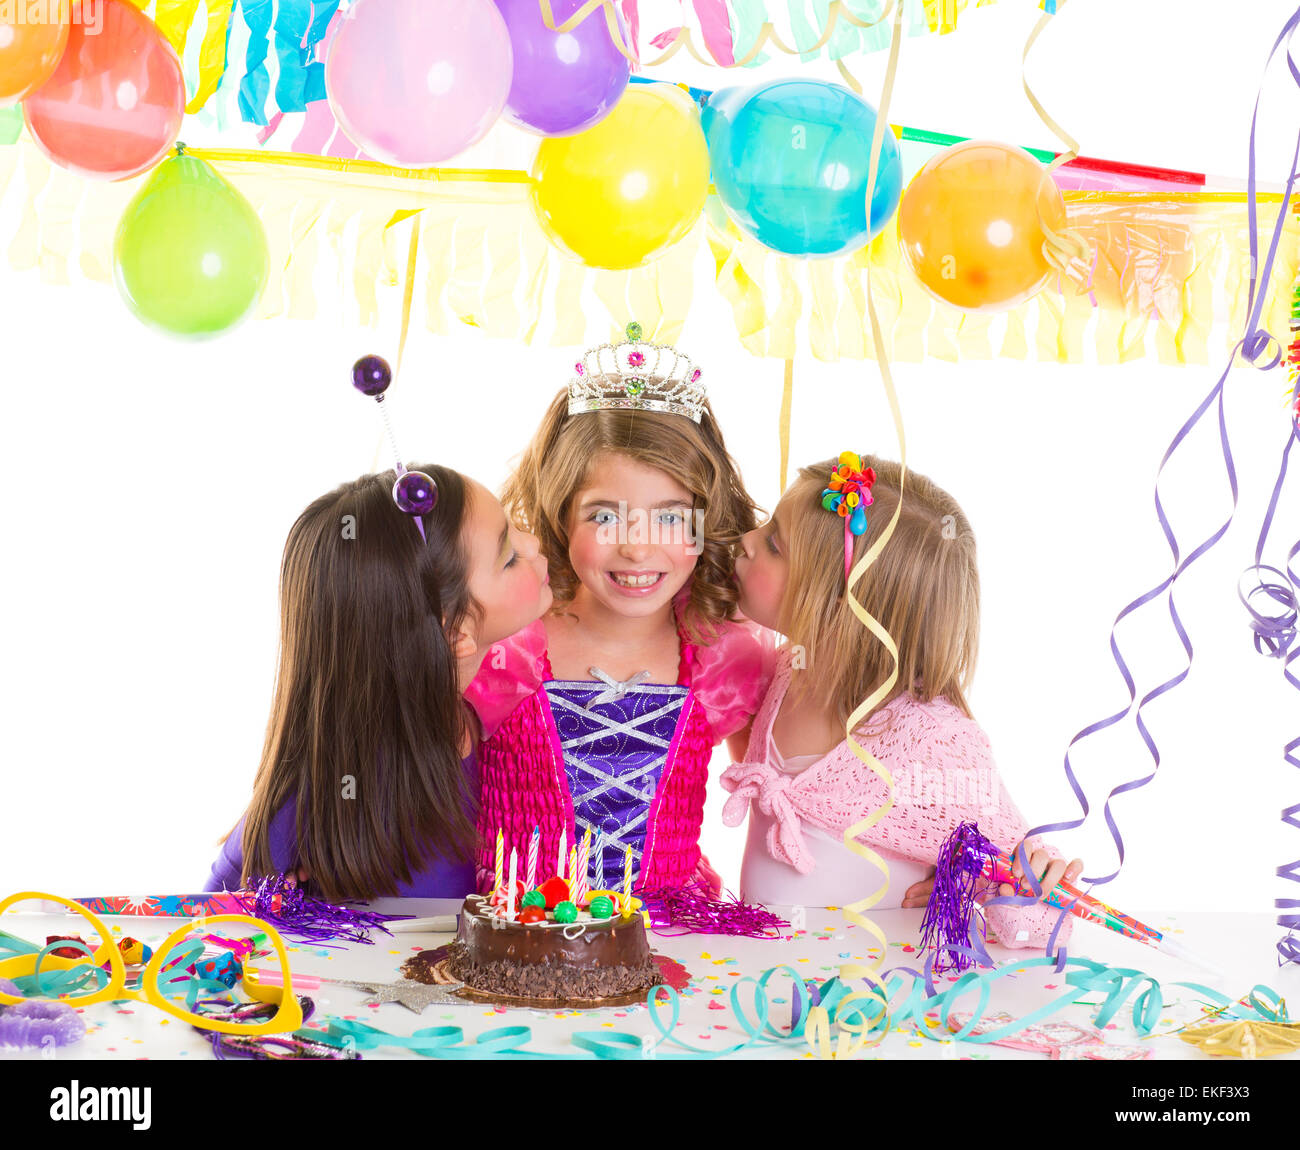 Children Girls Group In Birthday Party Greetings With A Kiss Stock